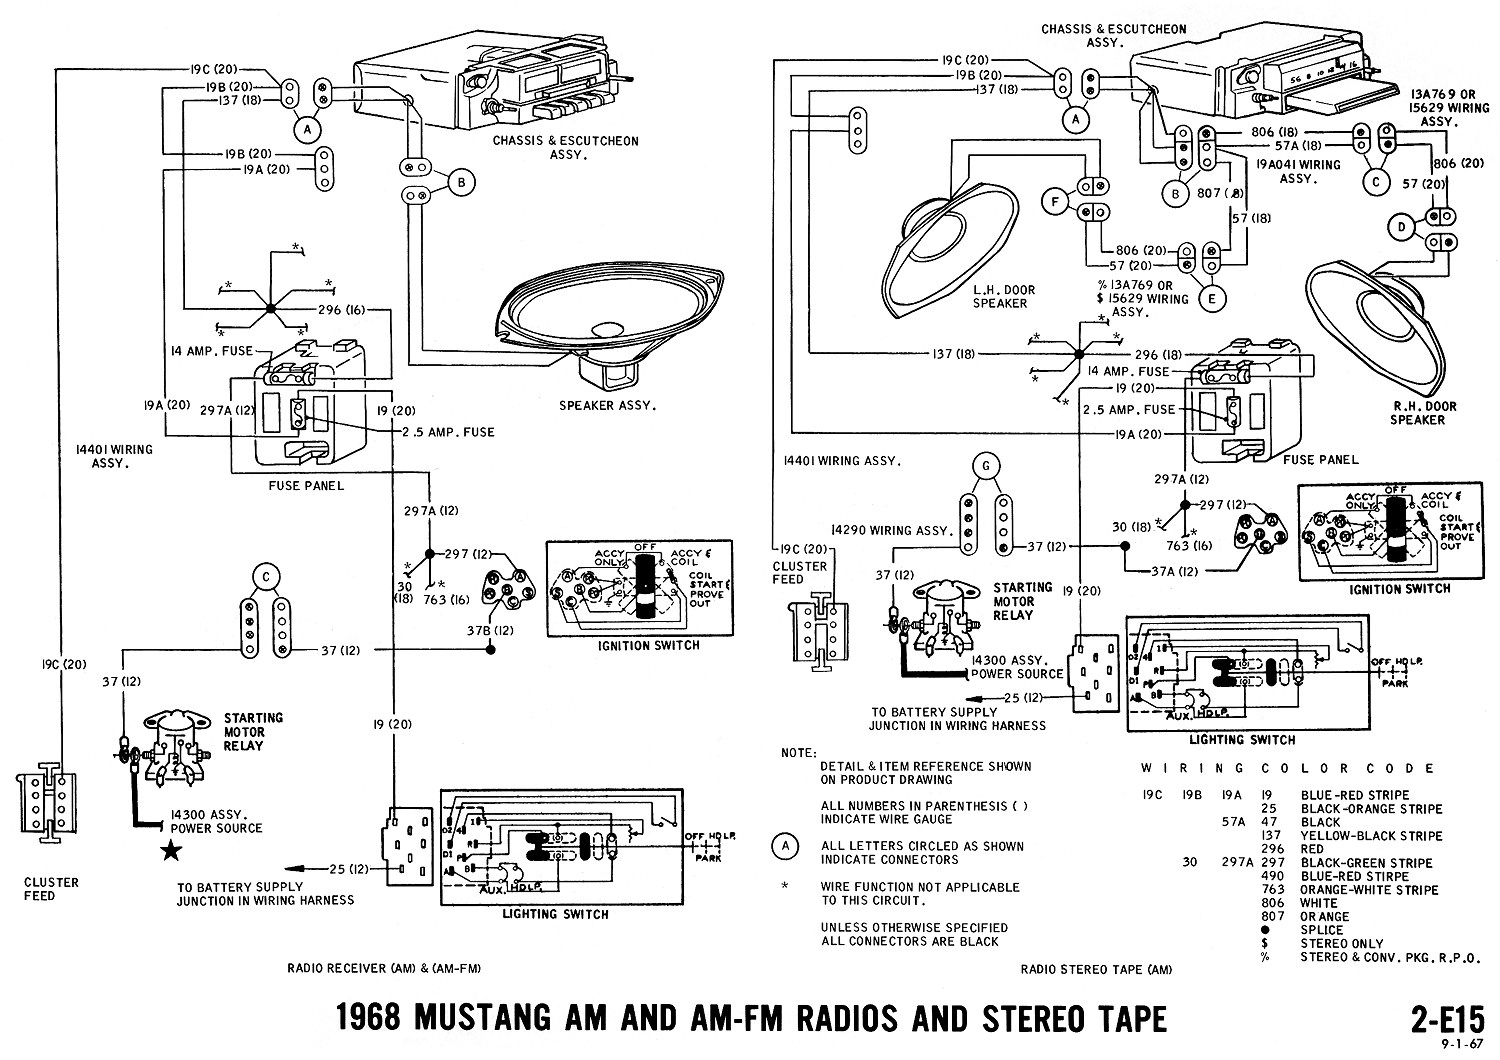 E39 Alarm Wiring Diagram in addition 309293 Msd likewise Toyota Land Cruiser Fj40 1974 Wiring as well Lexus Gx 470 Electrical Diagram also Opel Vivaro Wiring Diagram. on opel stereo wiring diagram